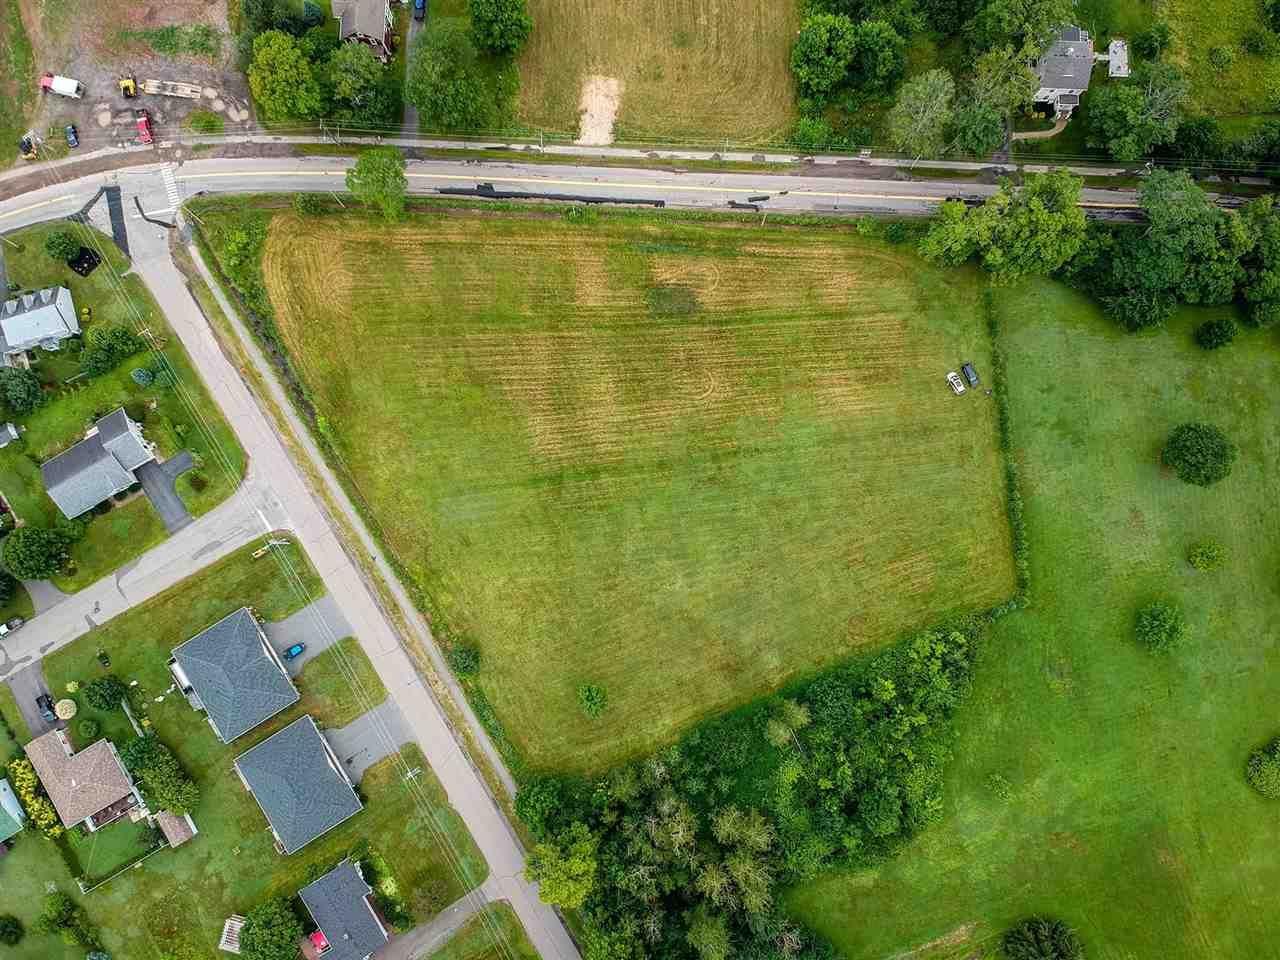 Main Photo: Lot Maple Avenue in Berwick: 404-Kings County Vacant Land for sale (Annapolis Valley)  : MLS®# 202015598